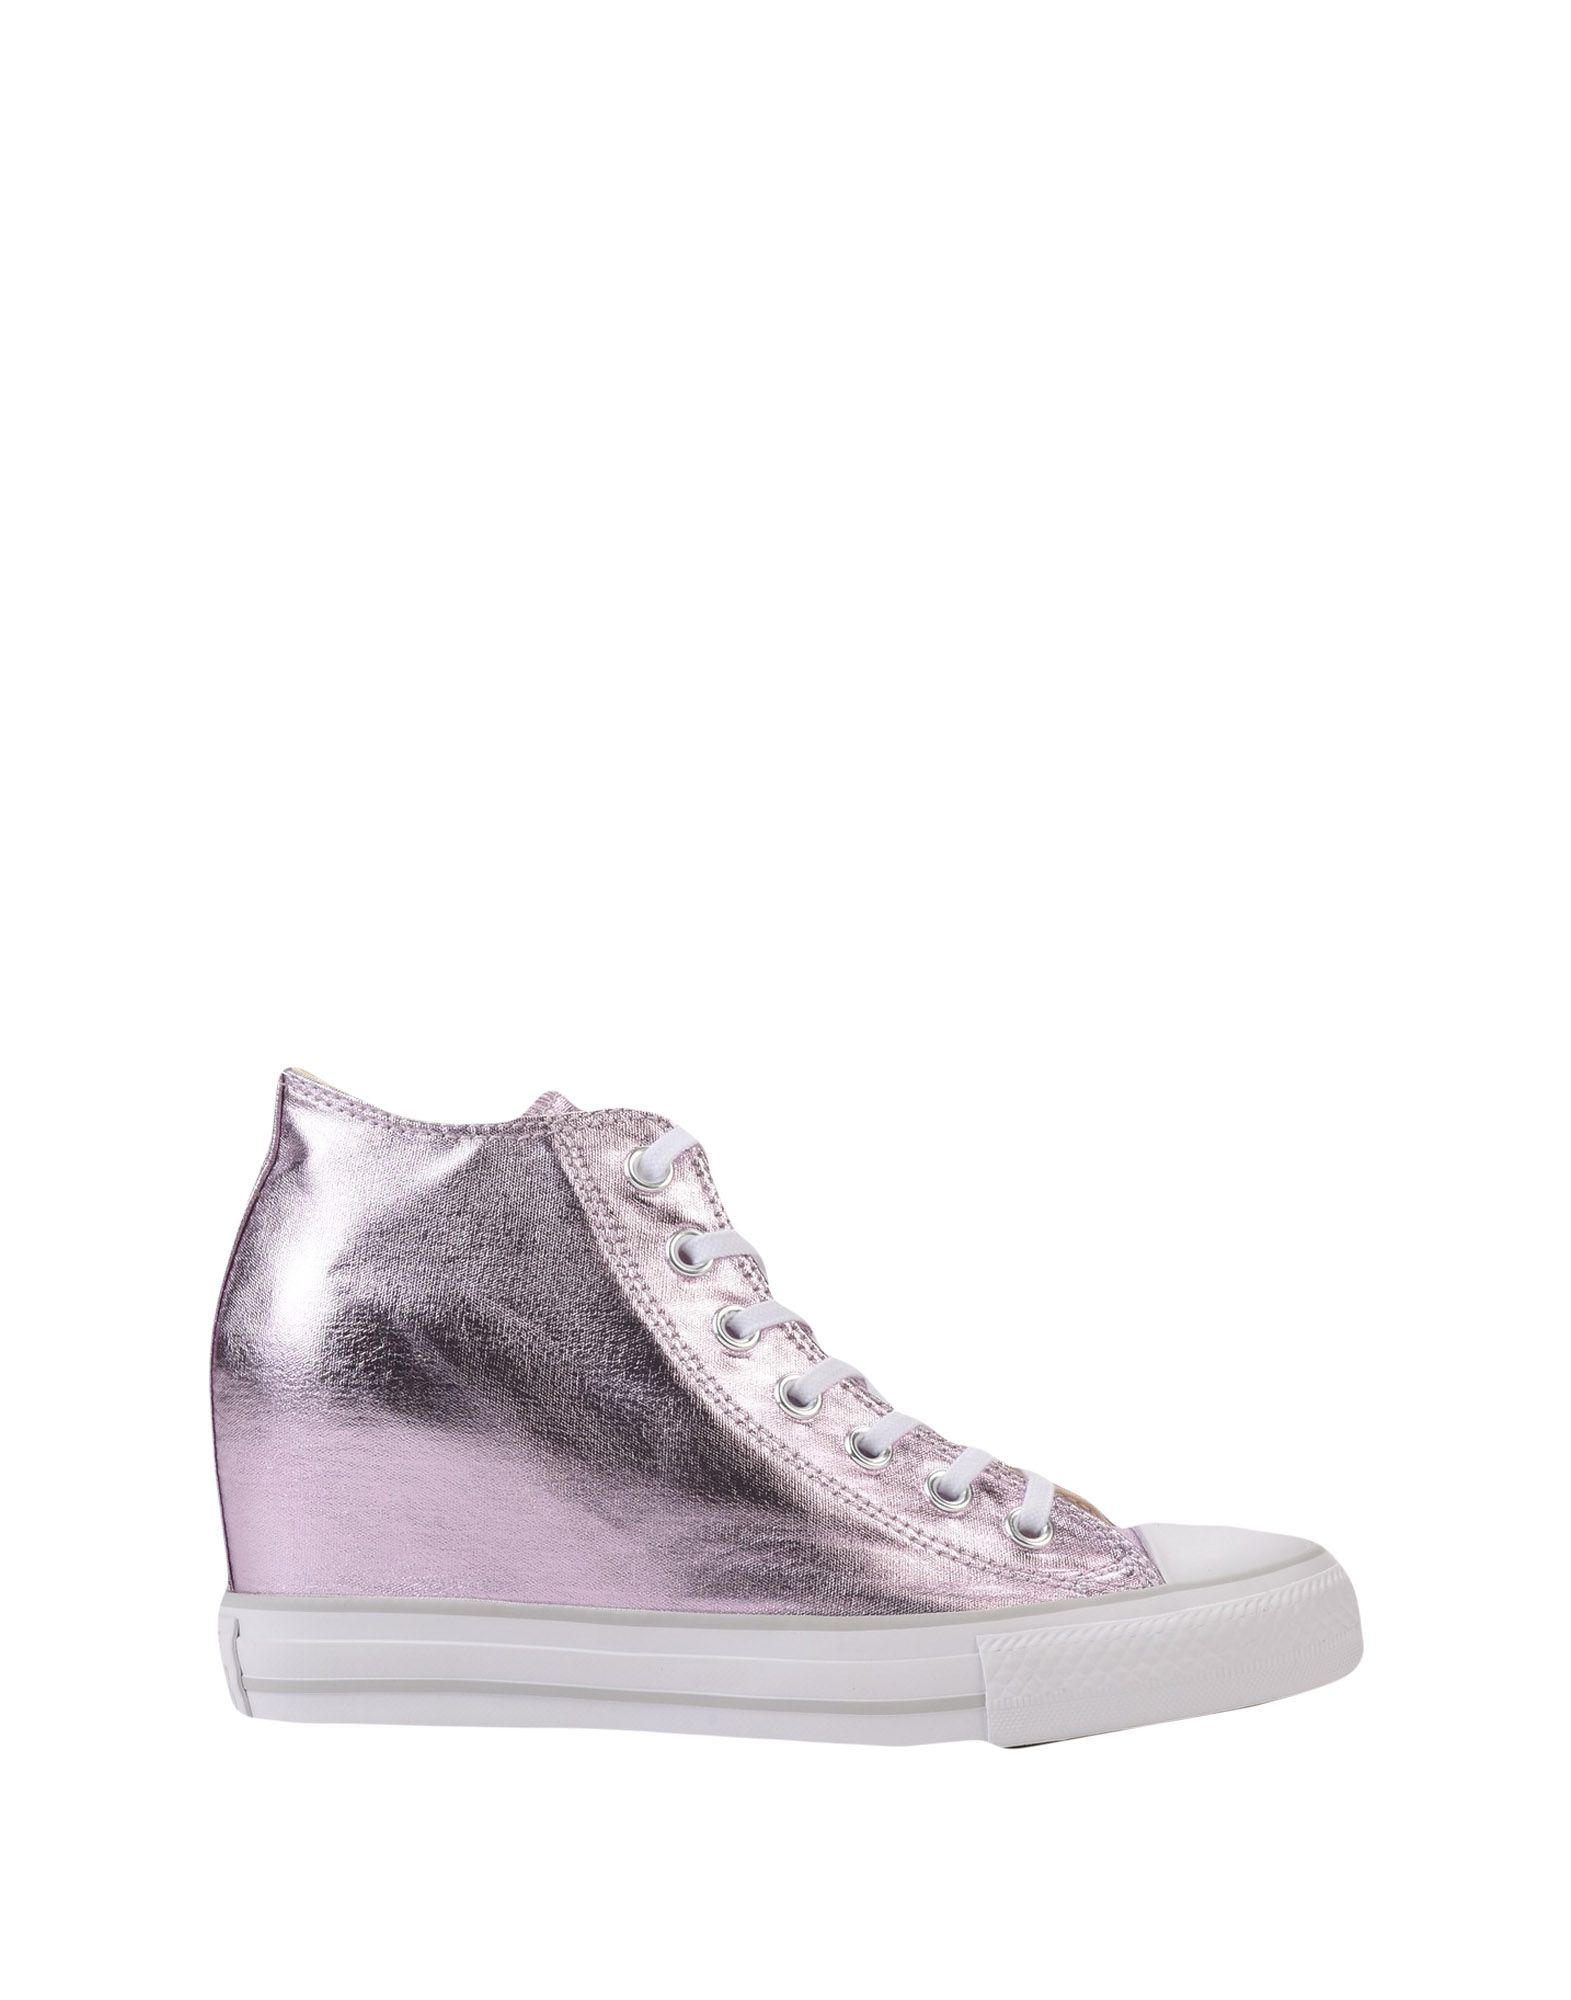 Sneakers Converse All Star Ct As Mid Lux Canvas Metallic - Femme - Sneakers Converse All Star sur